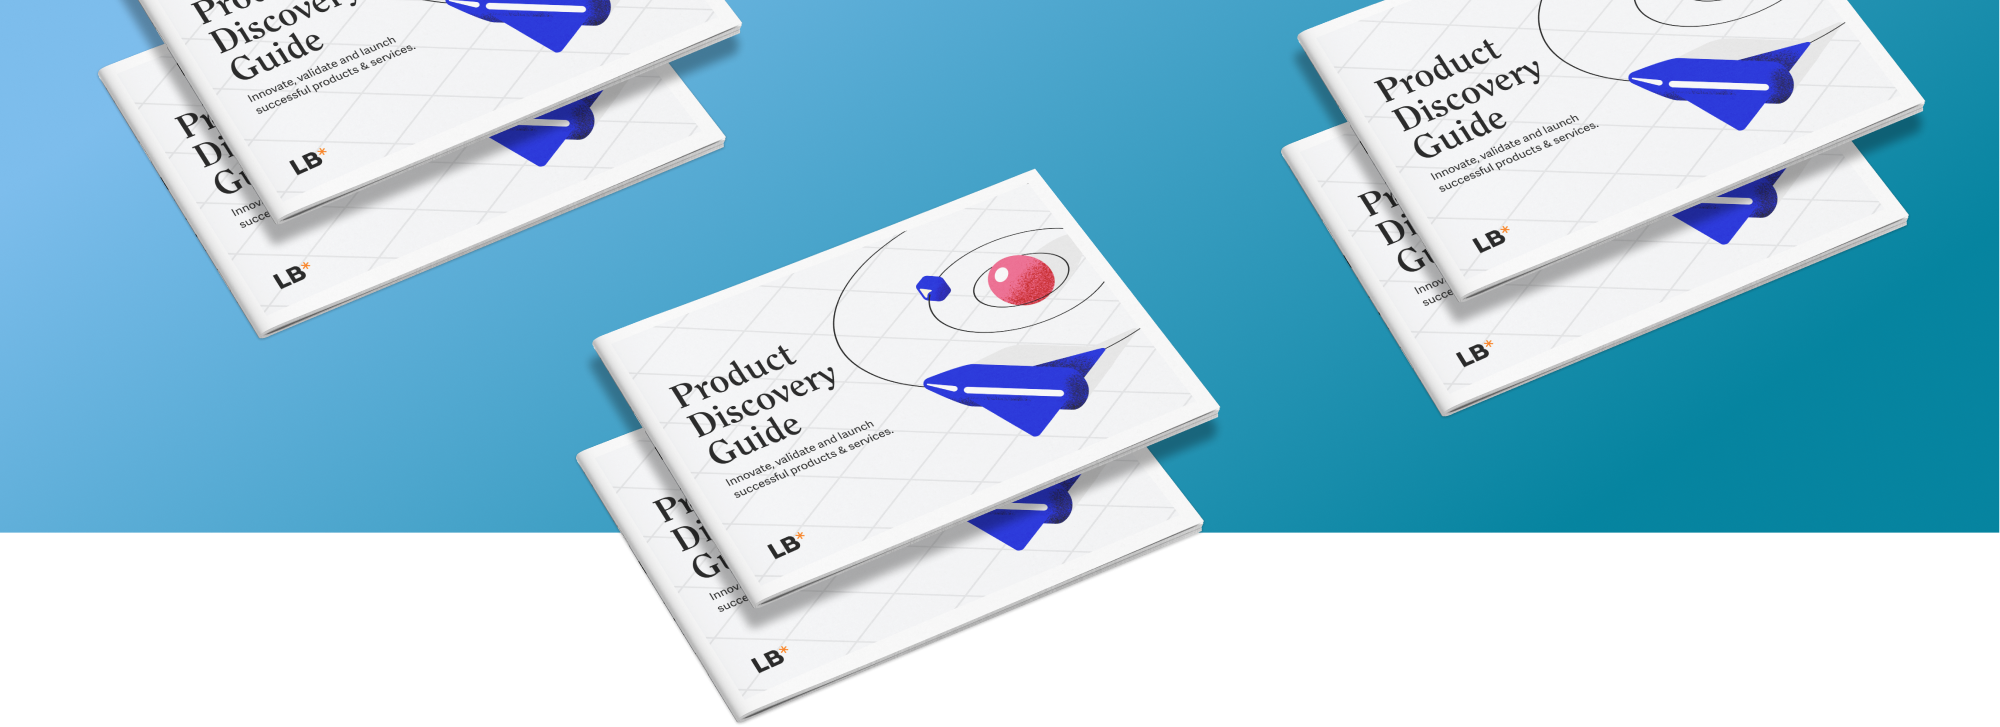 Product Discovery Guide